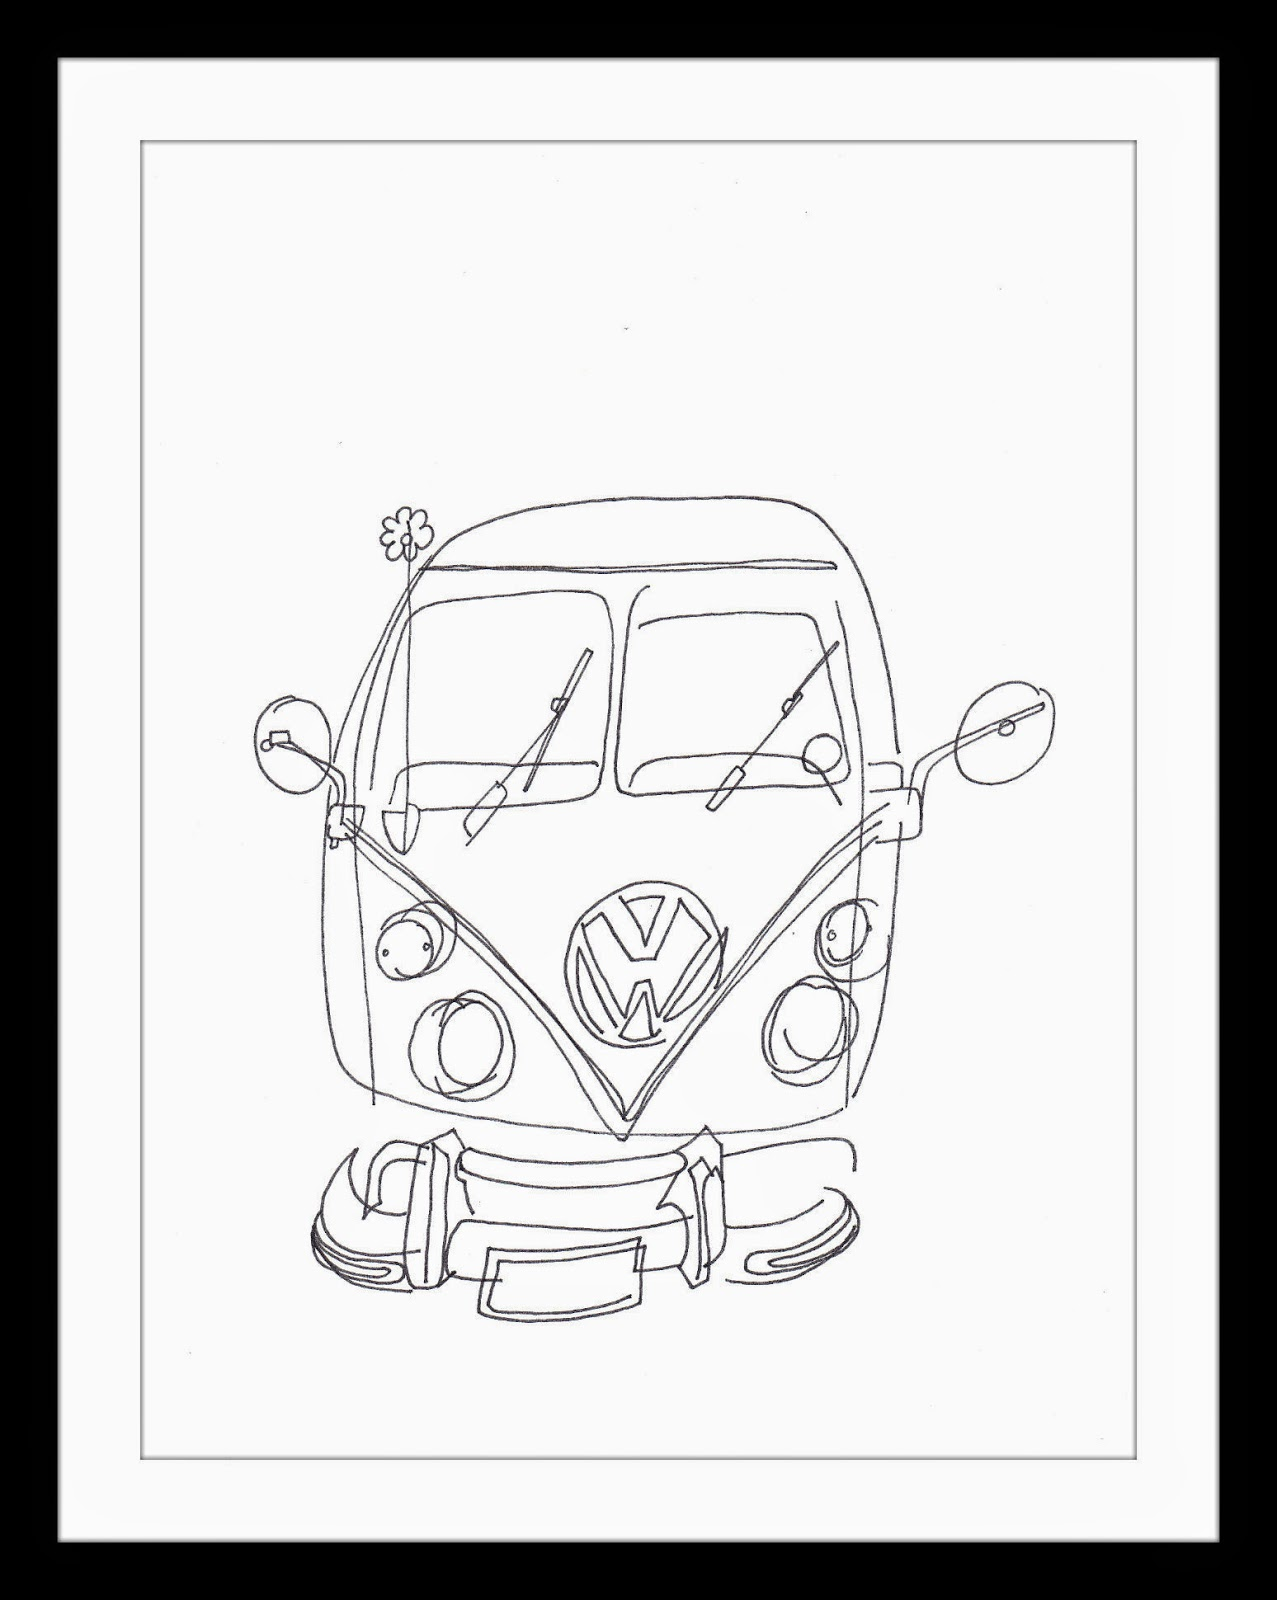 Vw Van Drawing At Getdrawings